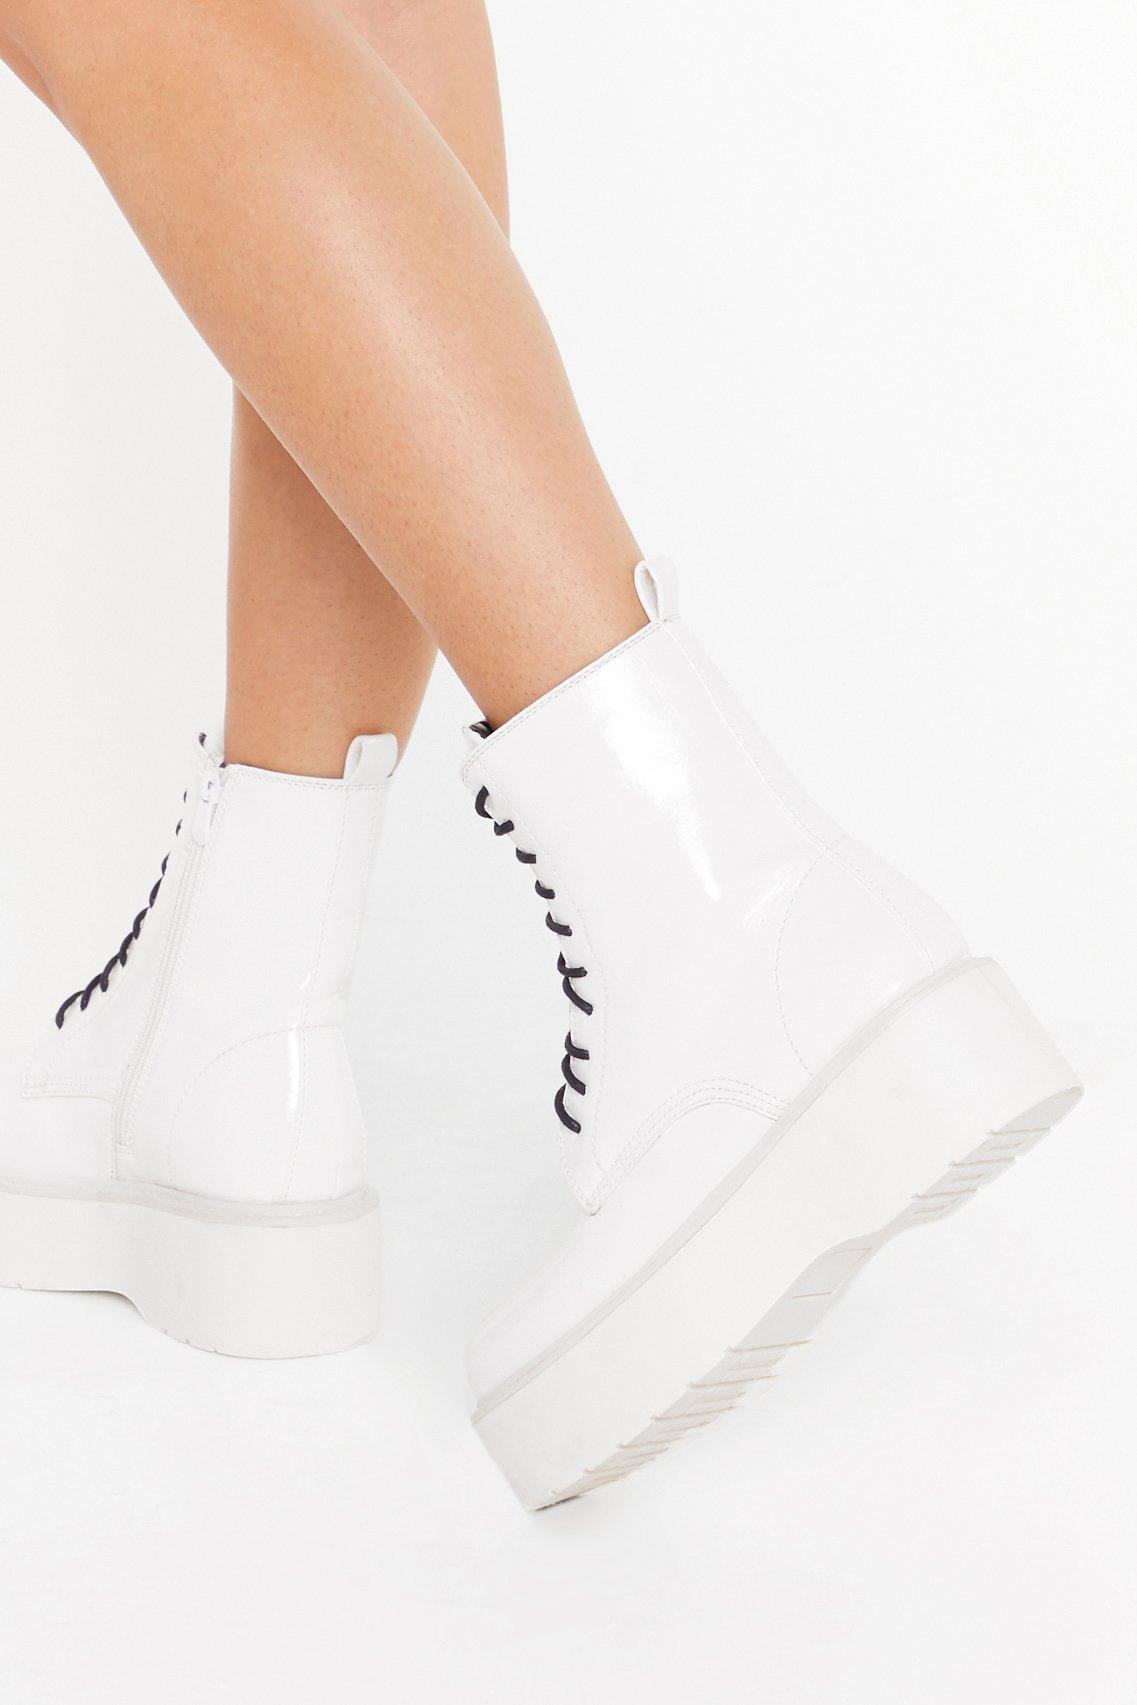 Image of Up On the Platform Faux Leather Lace-Up Boots